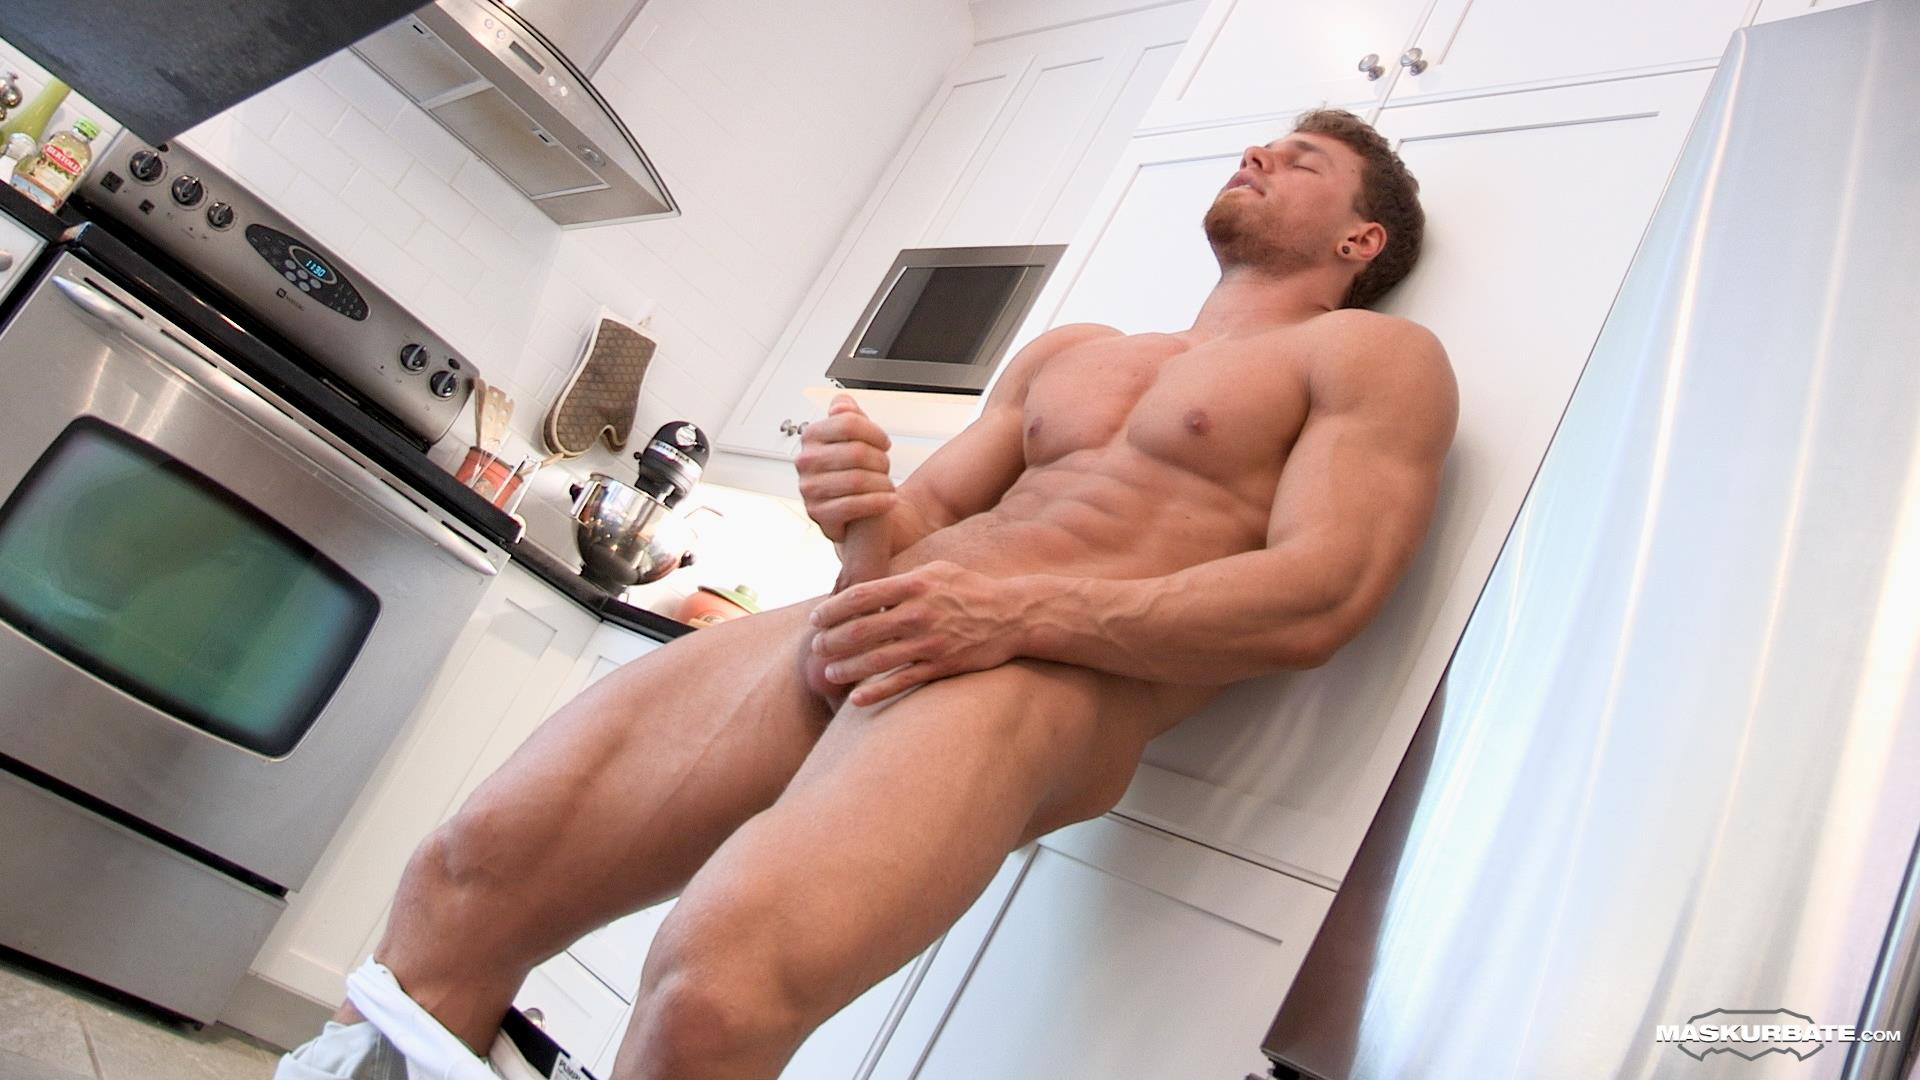 Maskurbate-Muscular-Guy-With-A-Big-Uncut-Cock-Jerking-Off-08 Jerking Off My Big Uncut Cock Into My Friends Wine Glass On New Years Eve